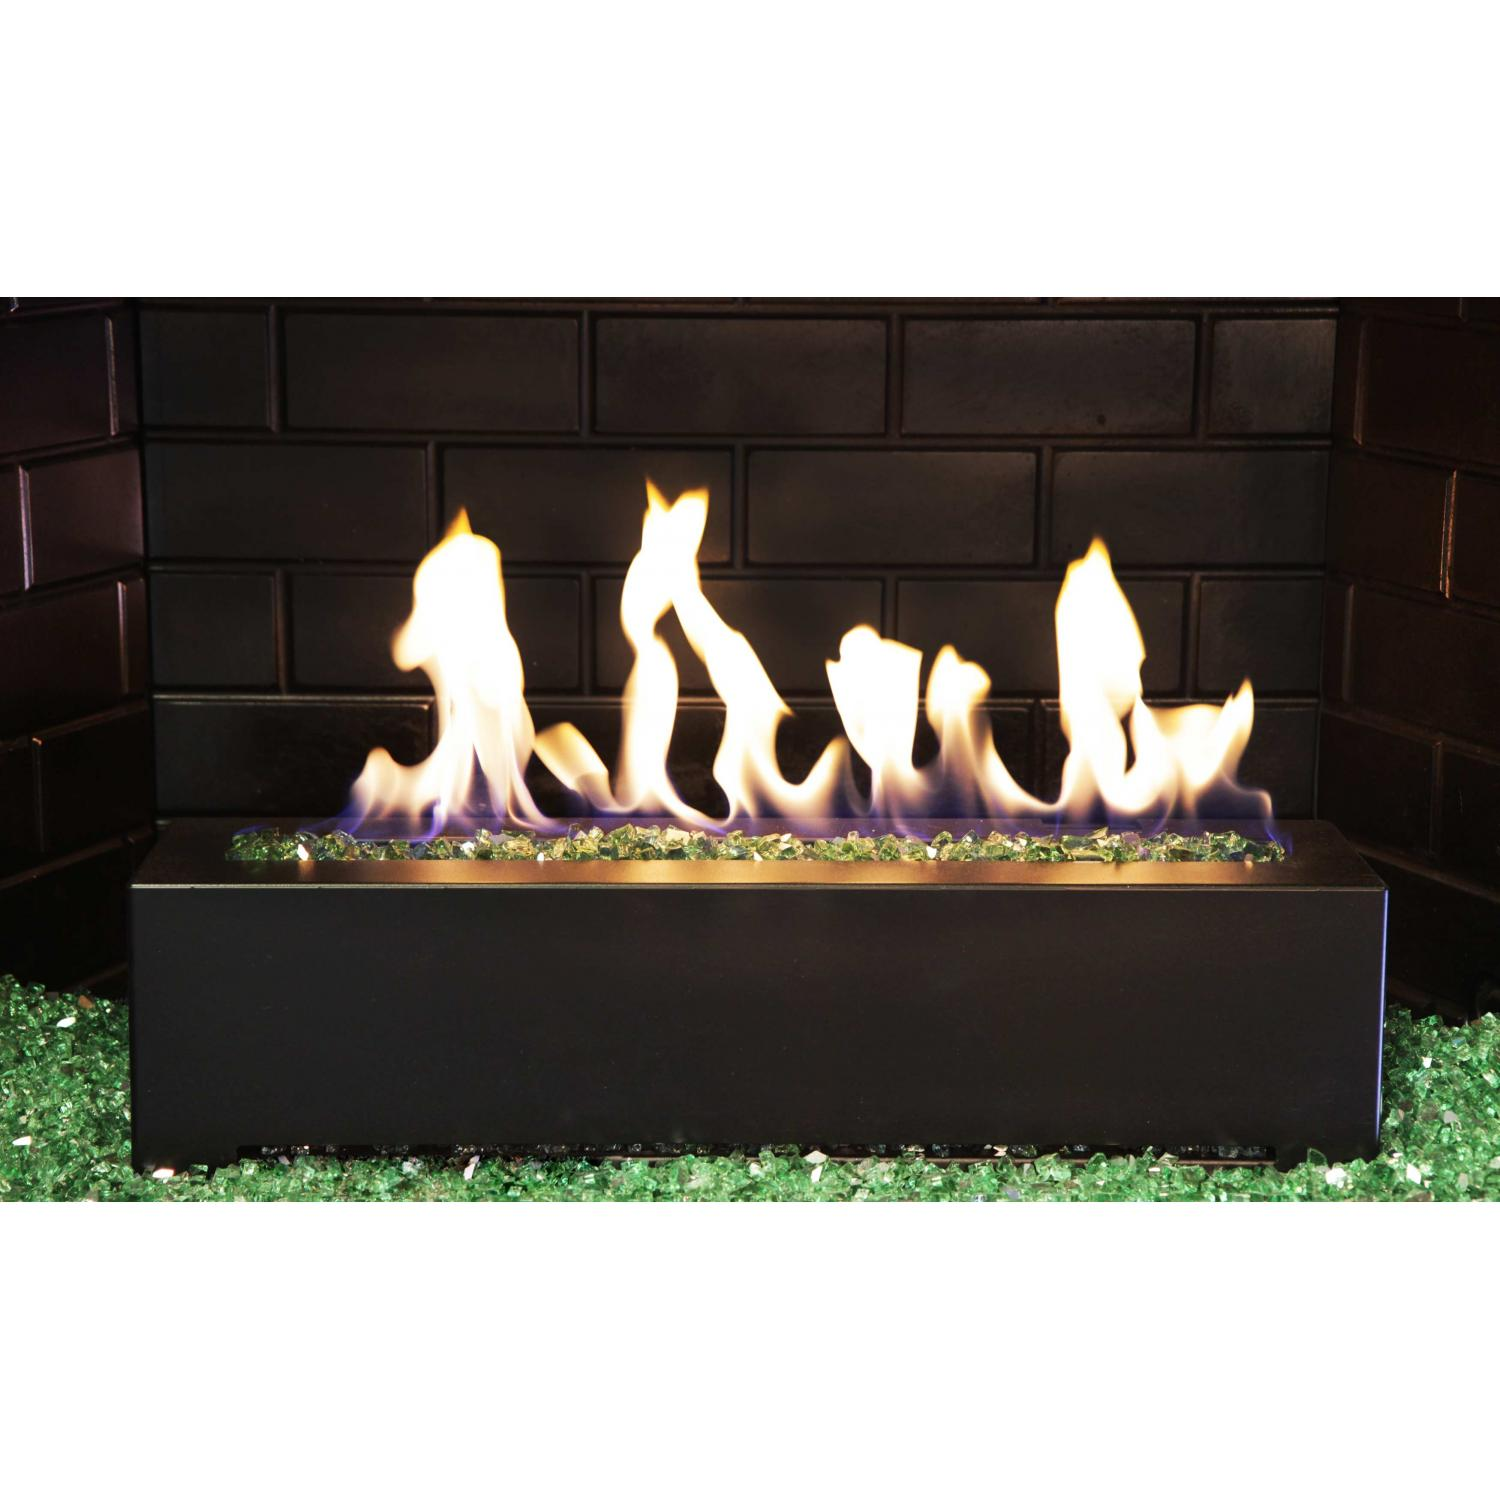 Picture of Golden Blount 24-Inch Alpine Linear Burner With Decorative Black Front Face And Emerald Reflective Fire Glass